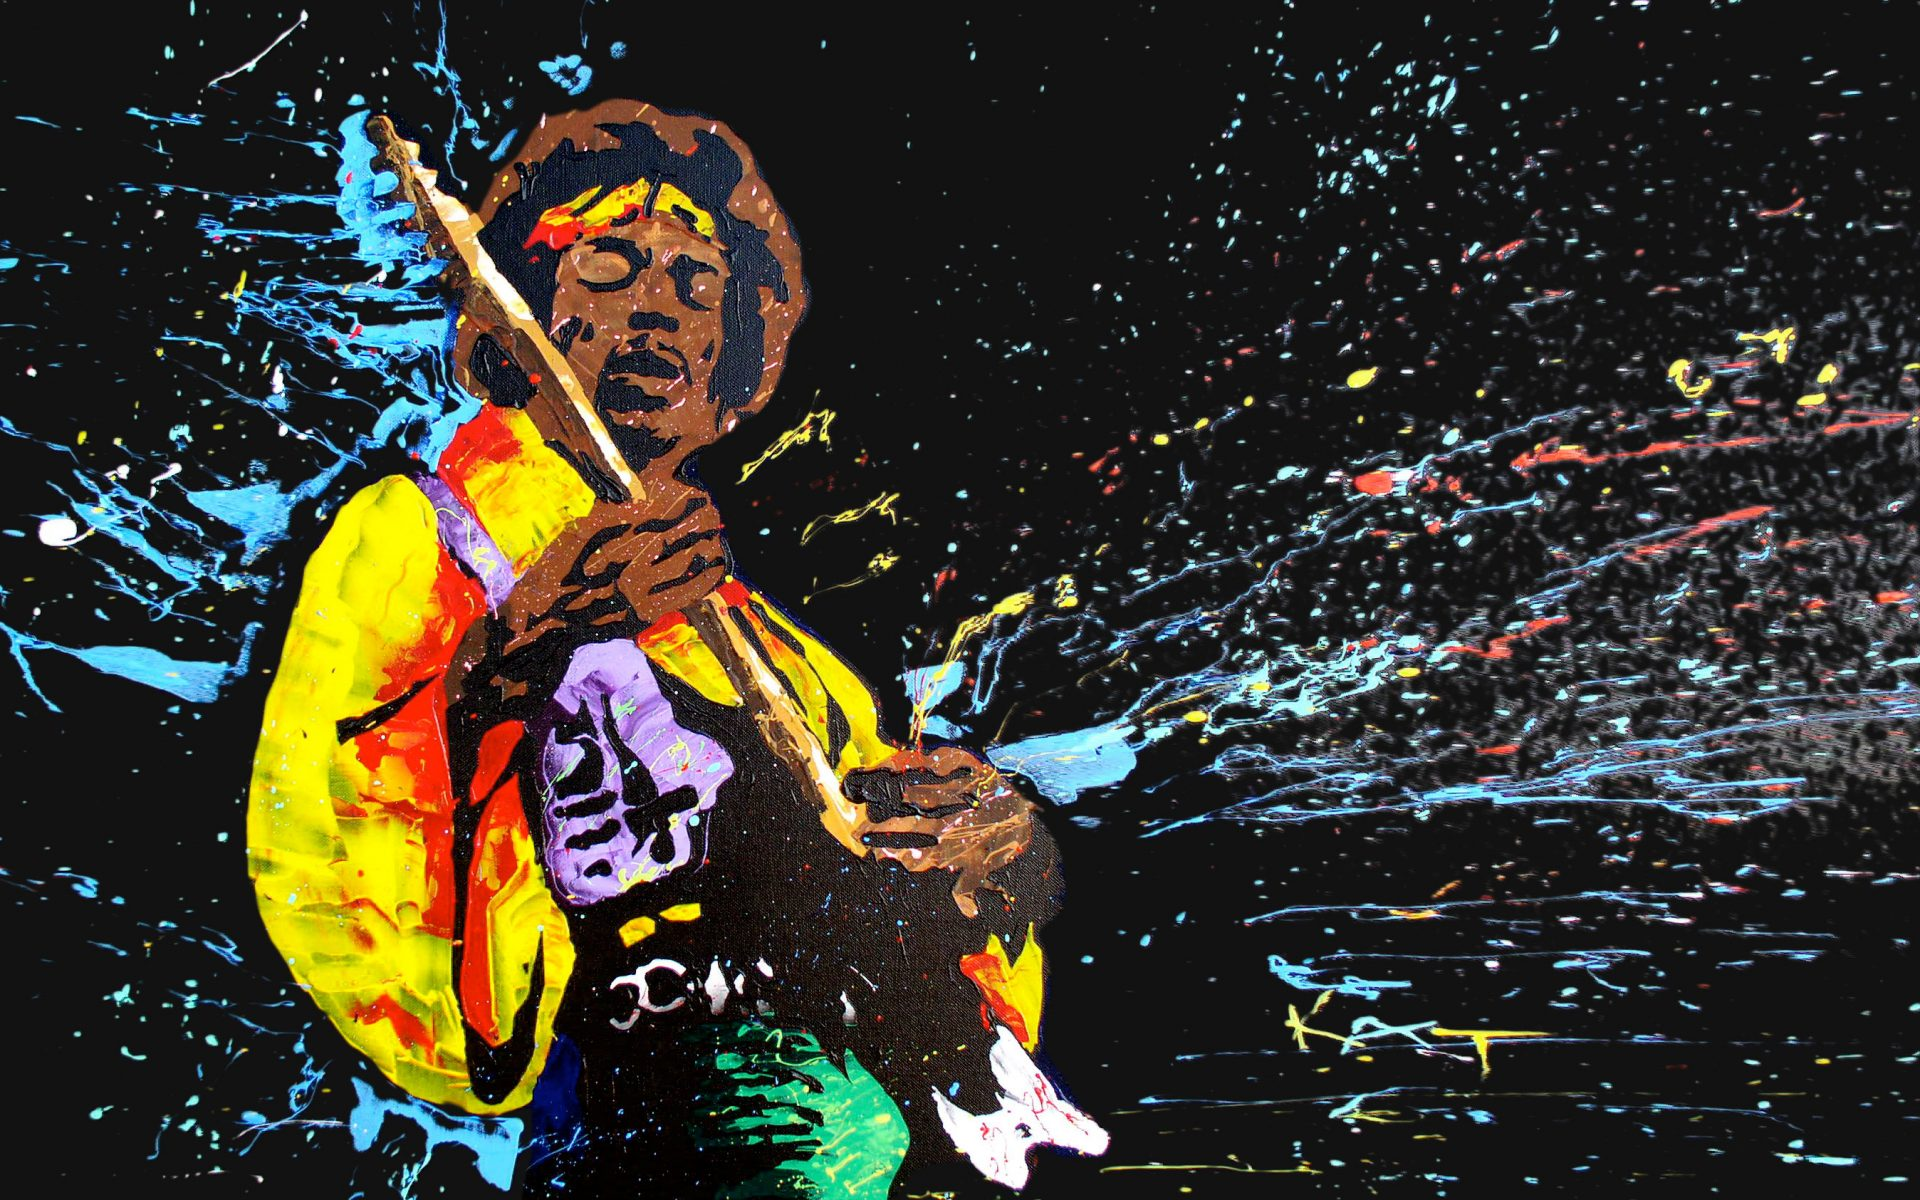 Jimi Hendrix Music Bands Musicians Abstract Colors